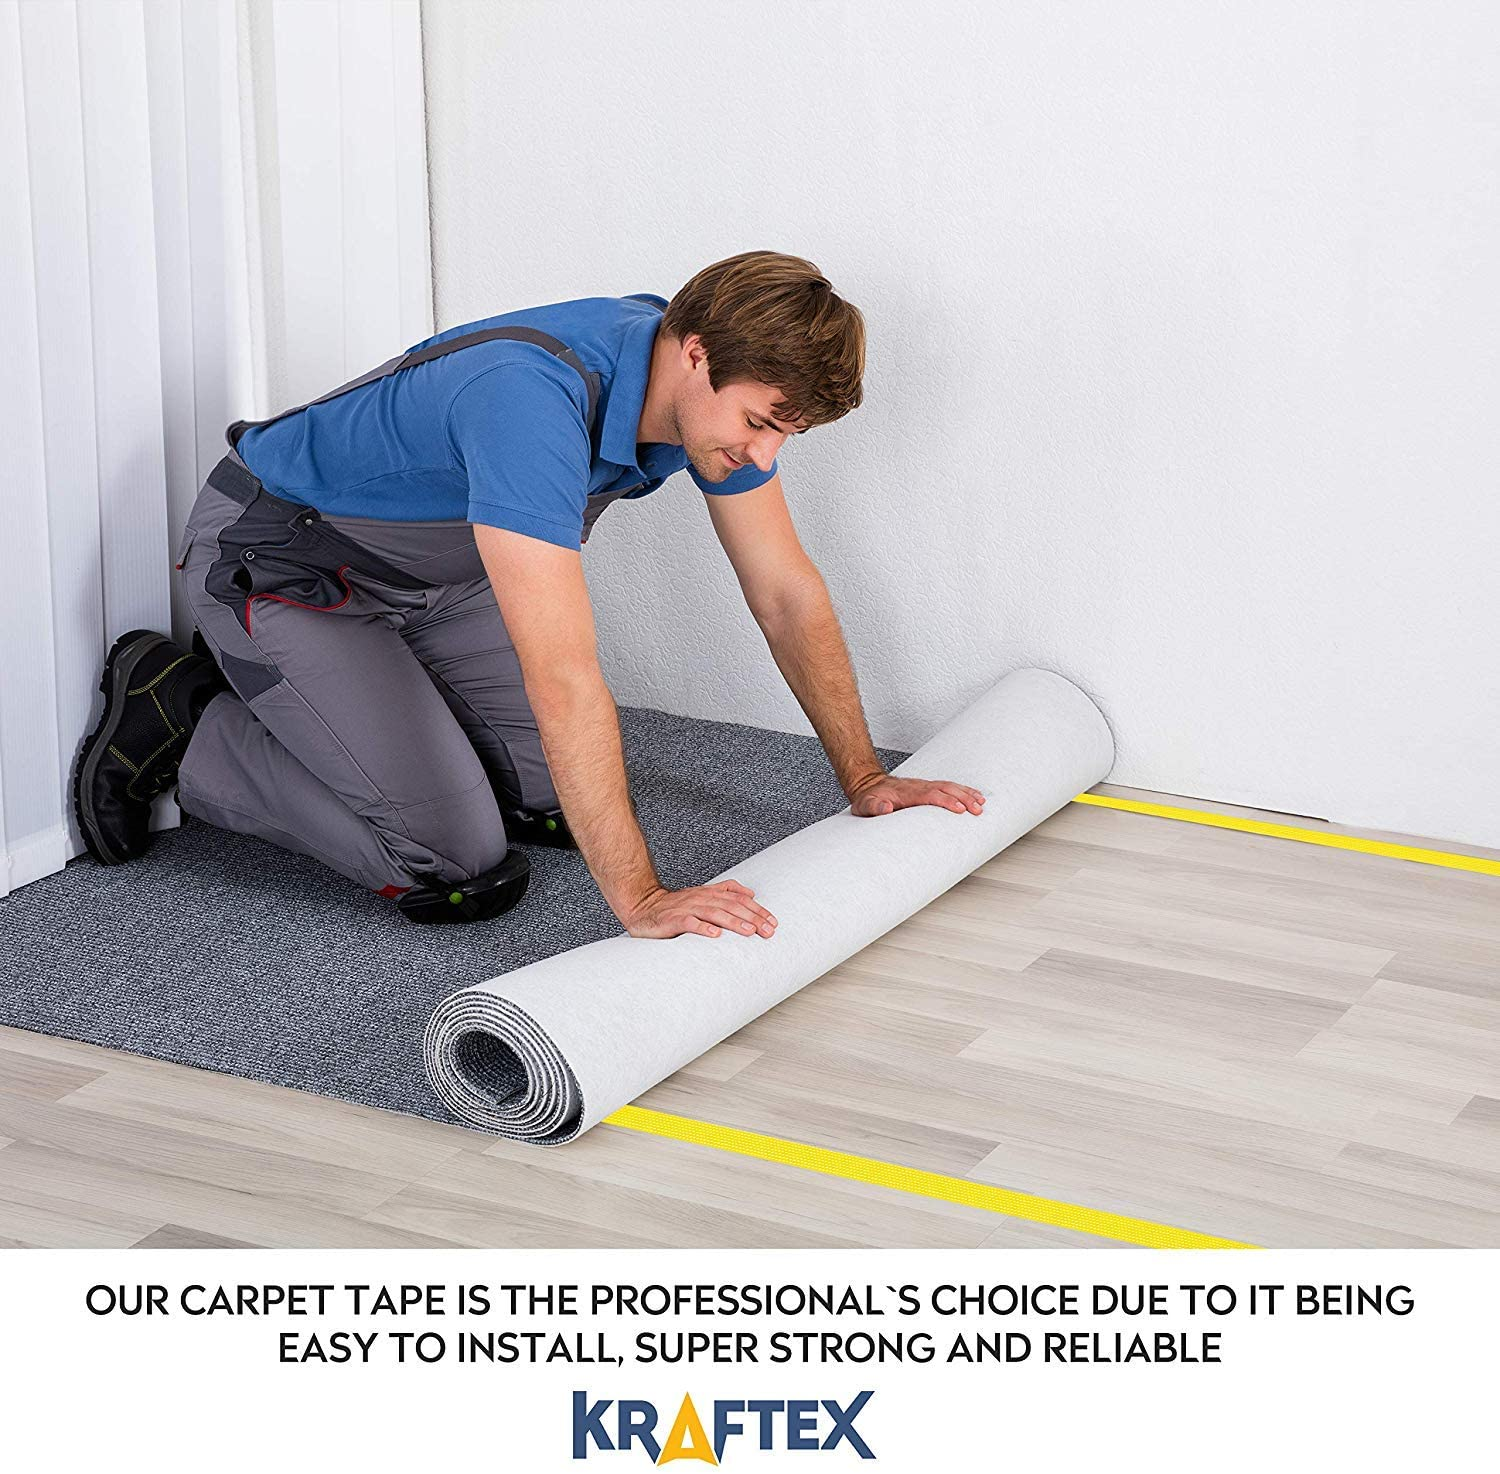 Kraftex Double Sided Unique Adhesive Carpet Tape